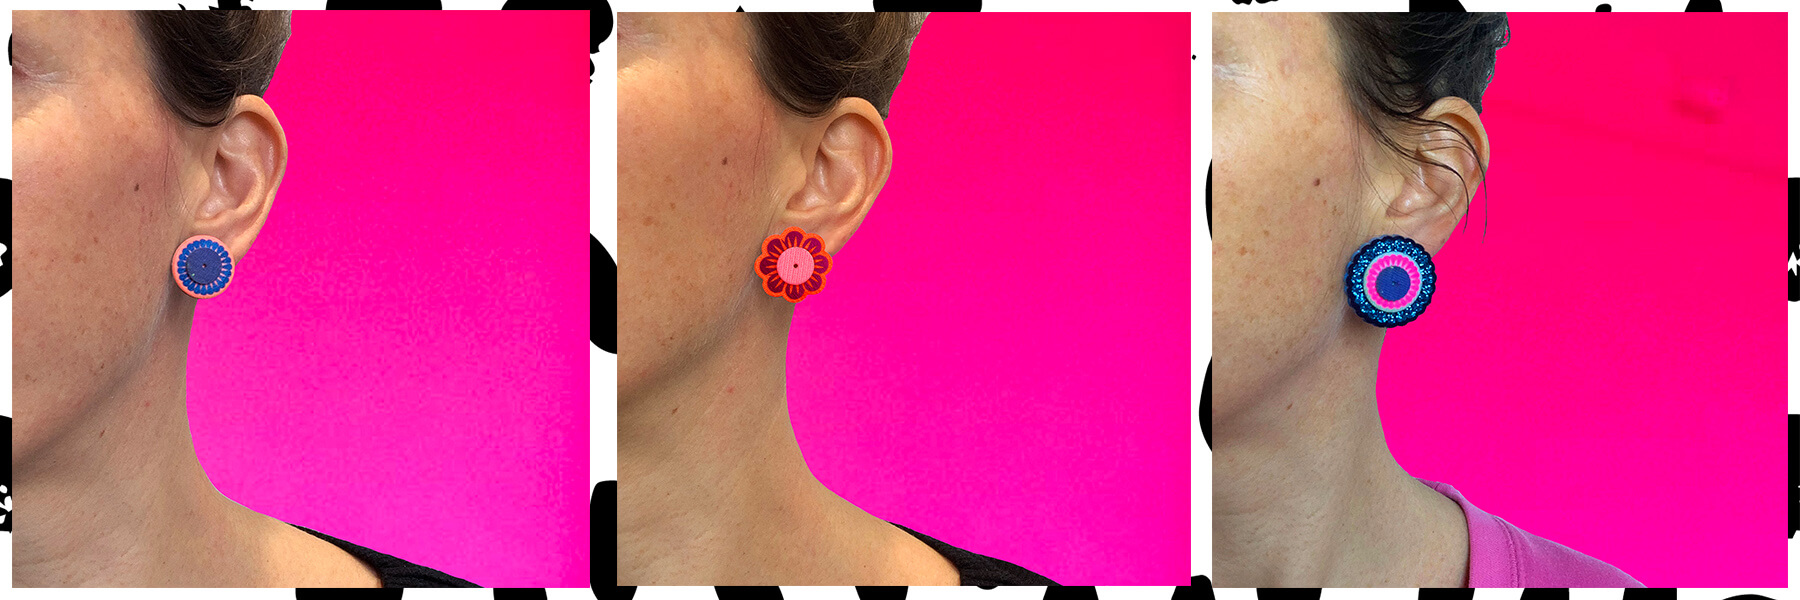 Three images of the side of a female face, a different pair of stud earrings is being modelled in each picture